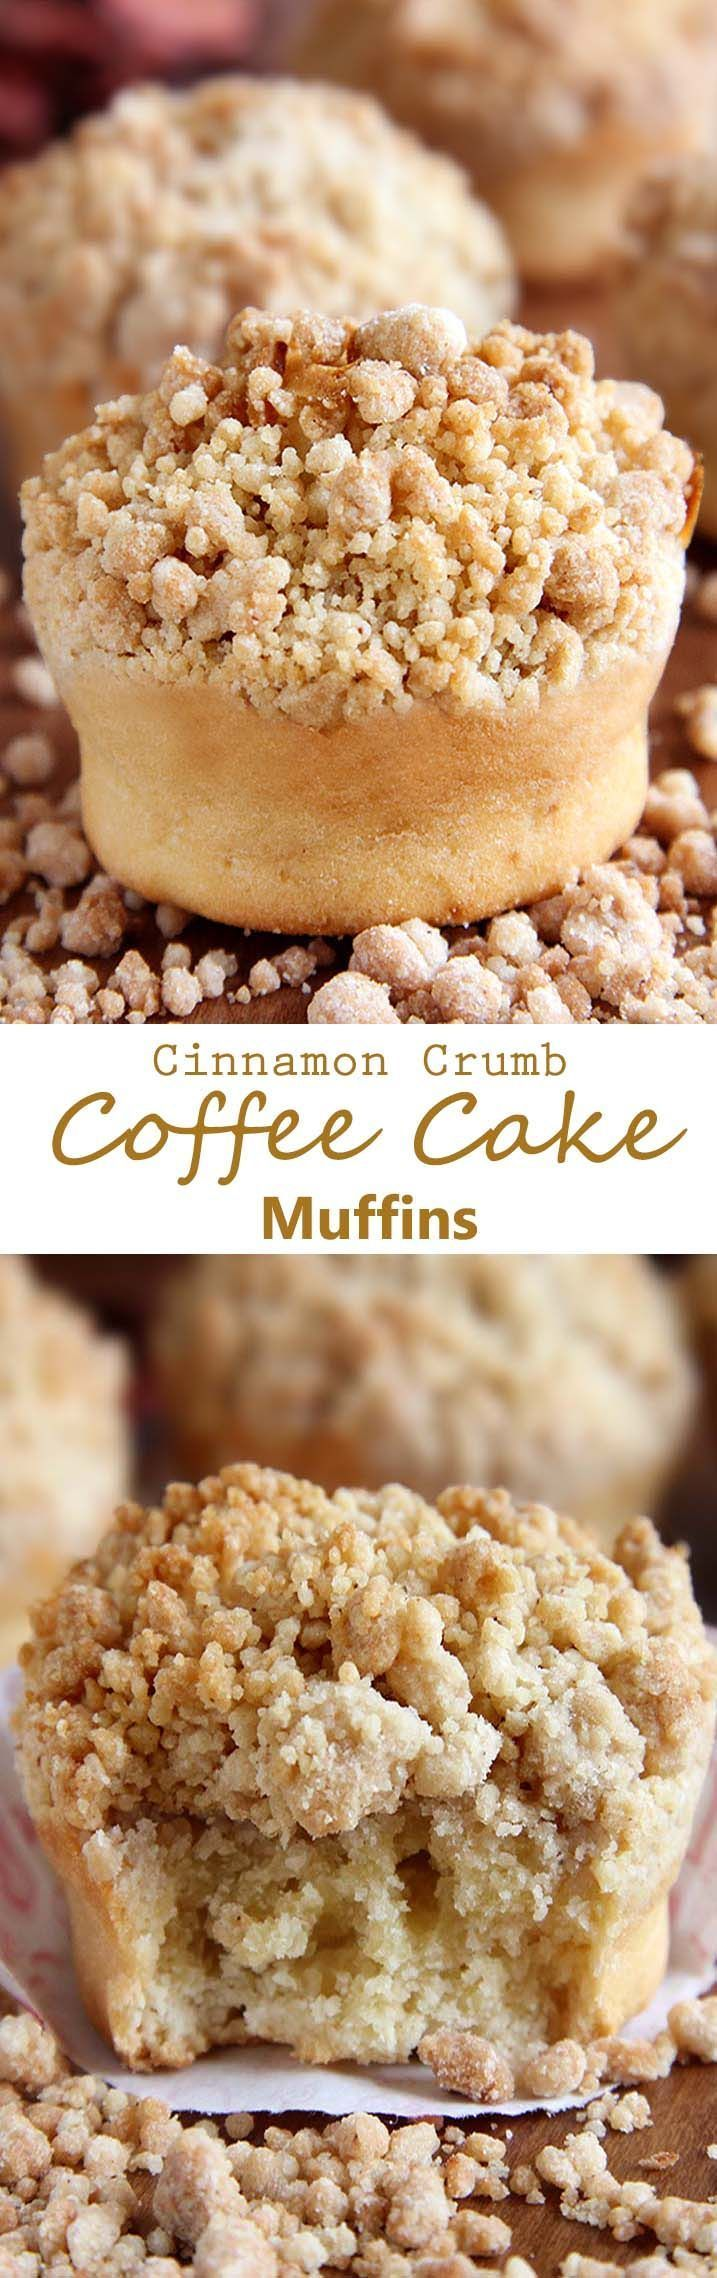 Cinnamon Crumb Coffee Cake Muffins - Gather your ingredients. It's a very humble coffee cake. Crumb topping is the star! It doesn't take much to highlight it.